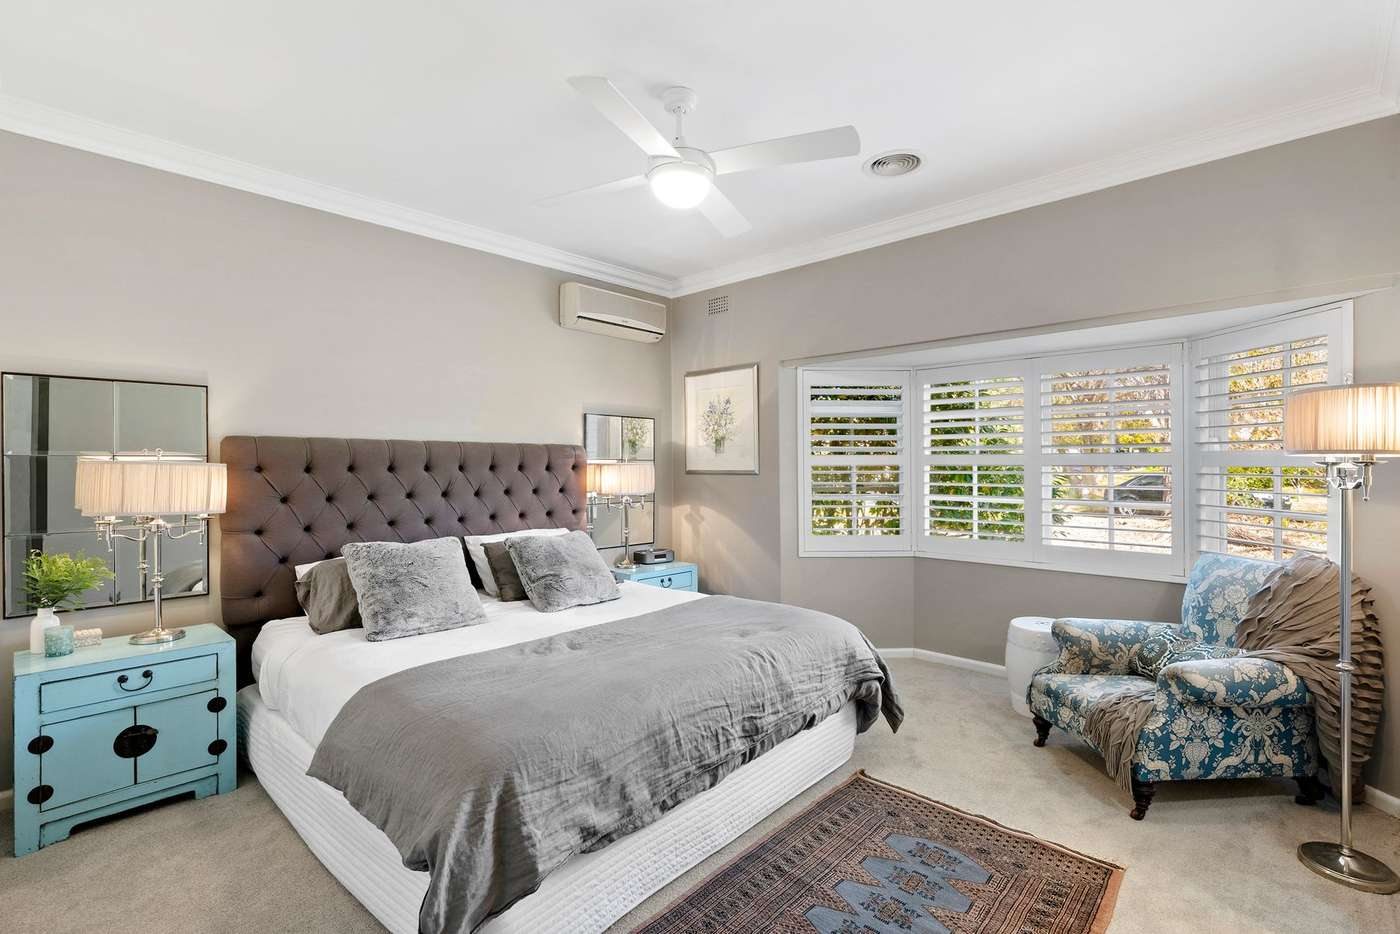 Sixth view of Homely house listing, 1 Binnowee Ave, St Ives NSW 2075